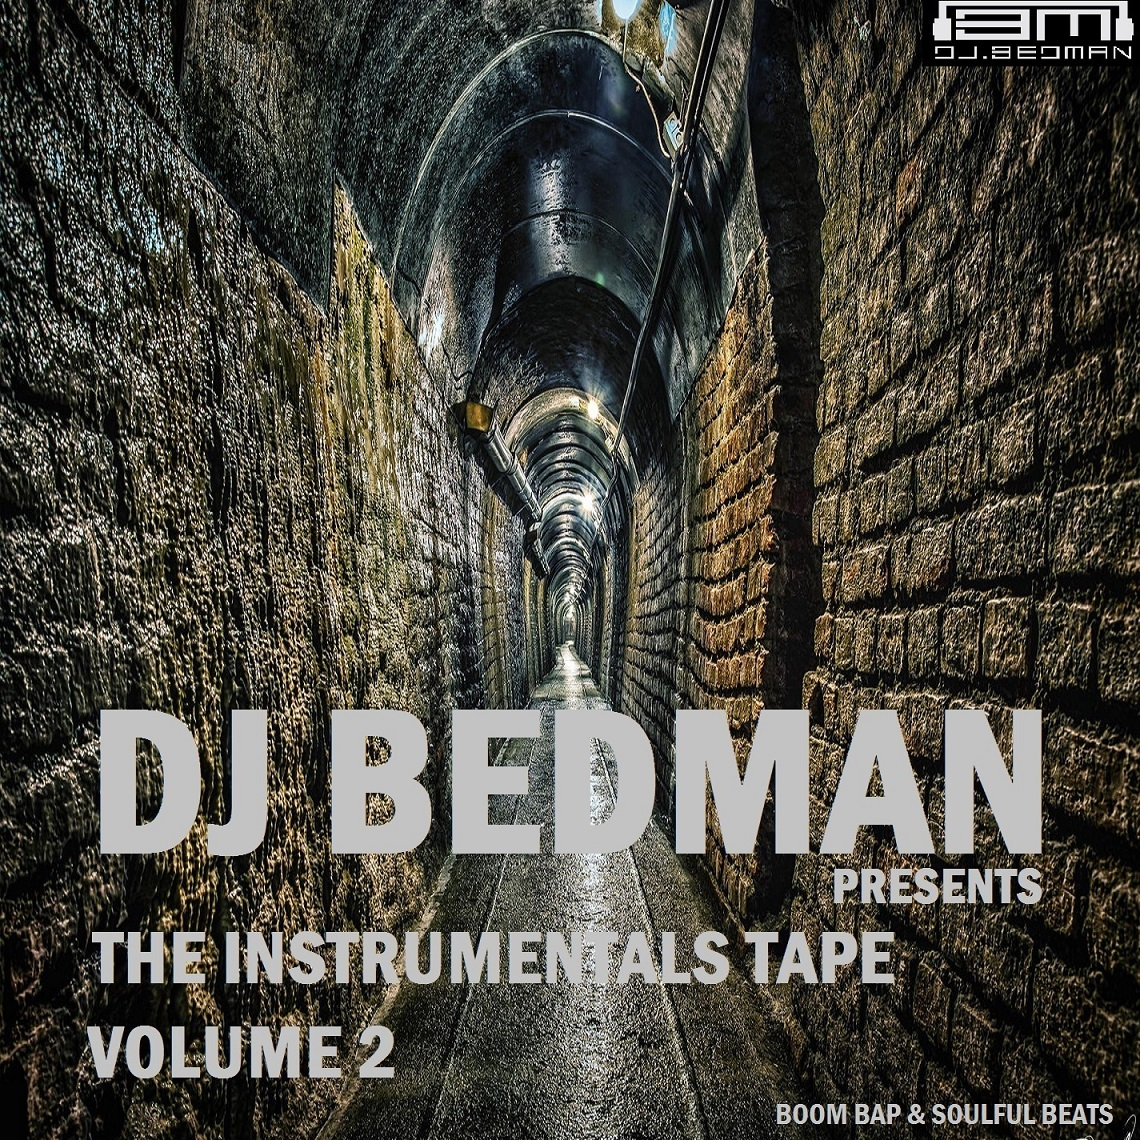 01. THE INSTRUMENTALS TAPE 2 FRONT